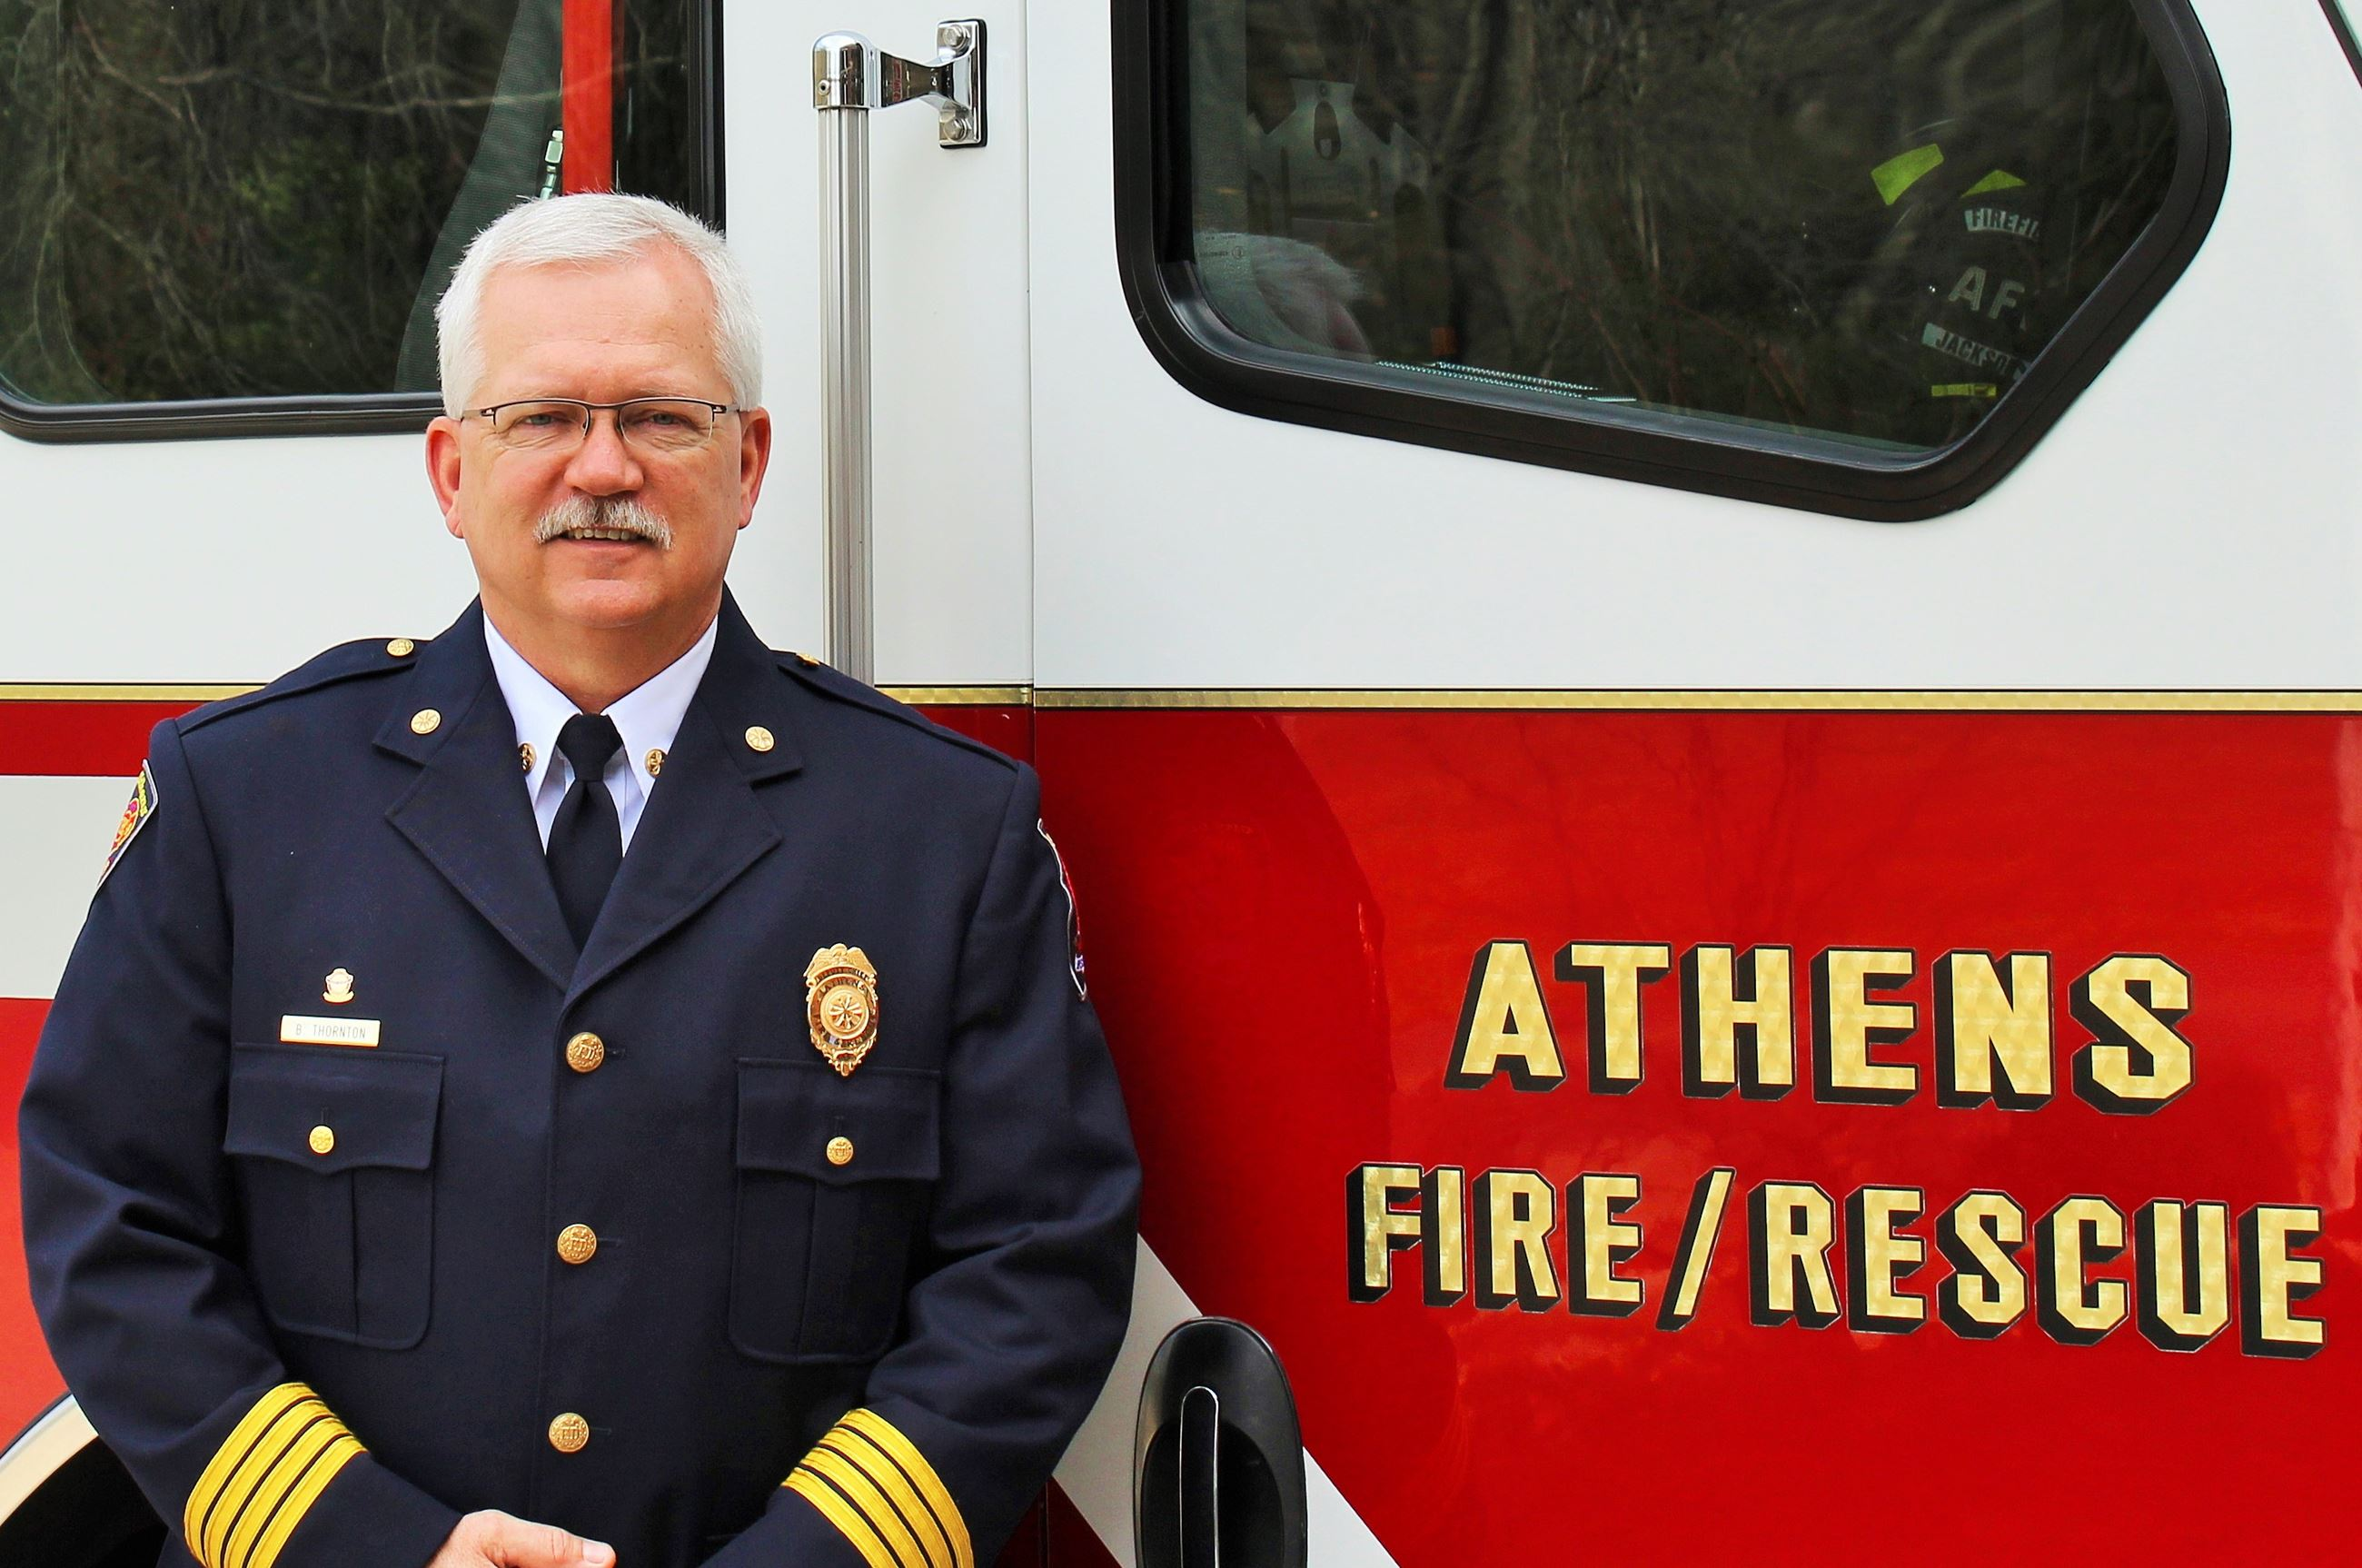 Chief Bryan Thornton in front of truck